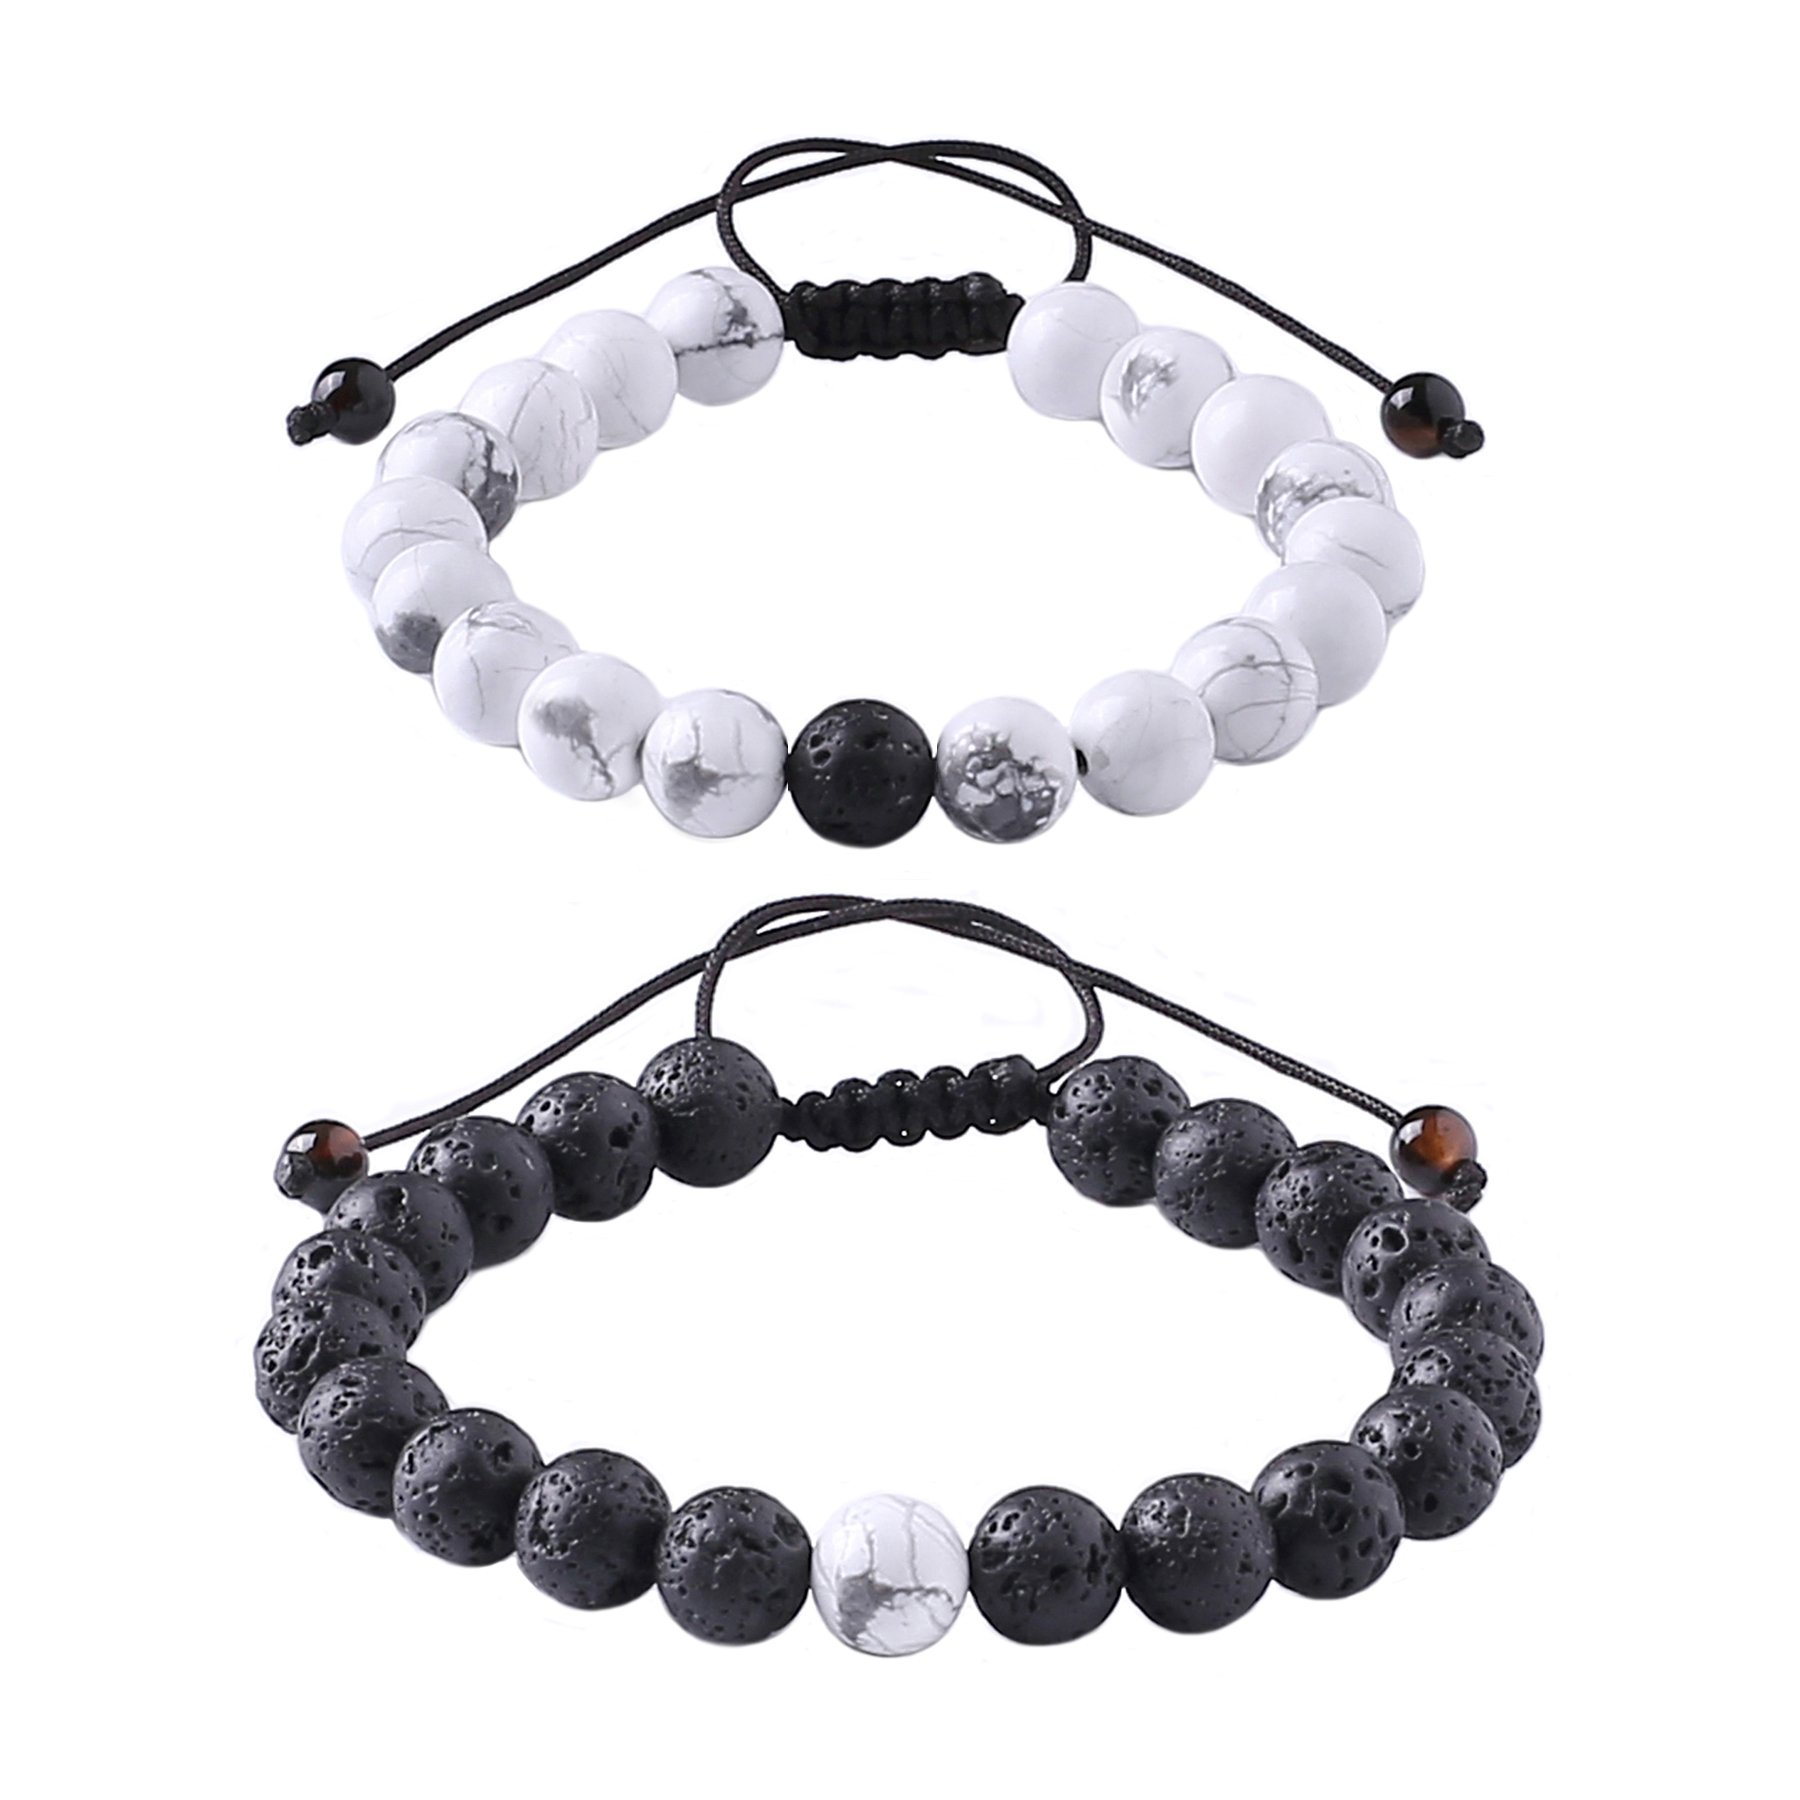 MAOCEN Distance Relationship Bracelet for Lover-2pcs Black Lava Rock & White Howlite Stone 8mm Beads (Braided) by MAOCEN